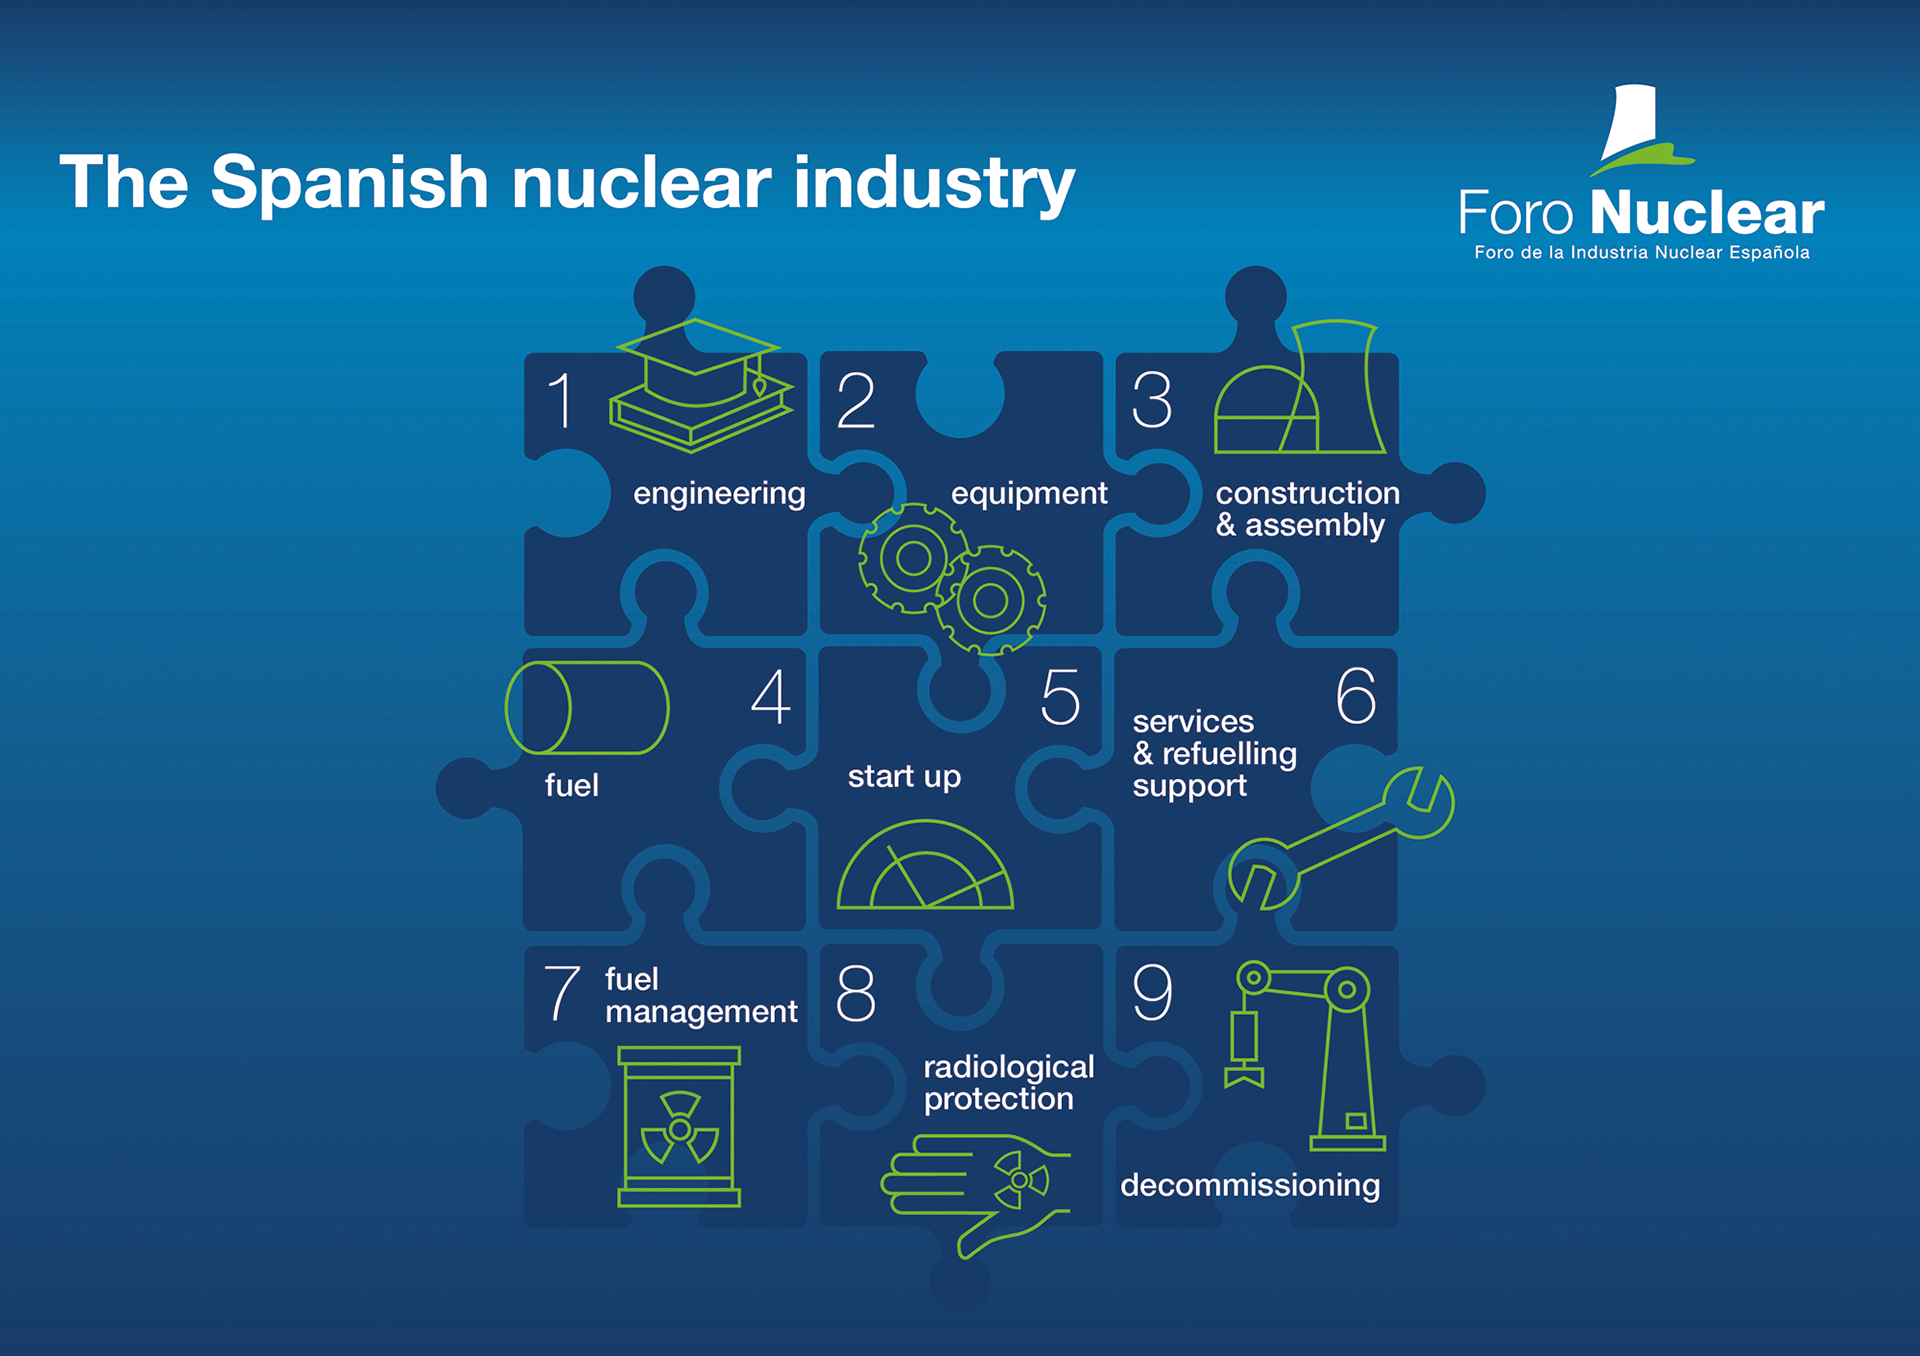 Capabilities of the Spanish nuclear industry